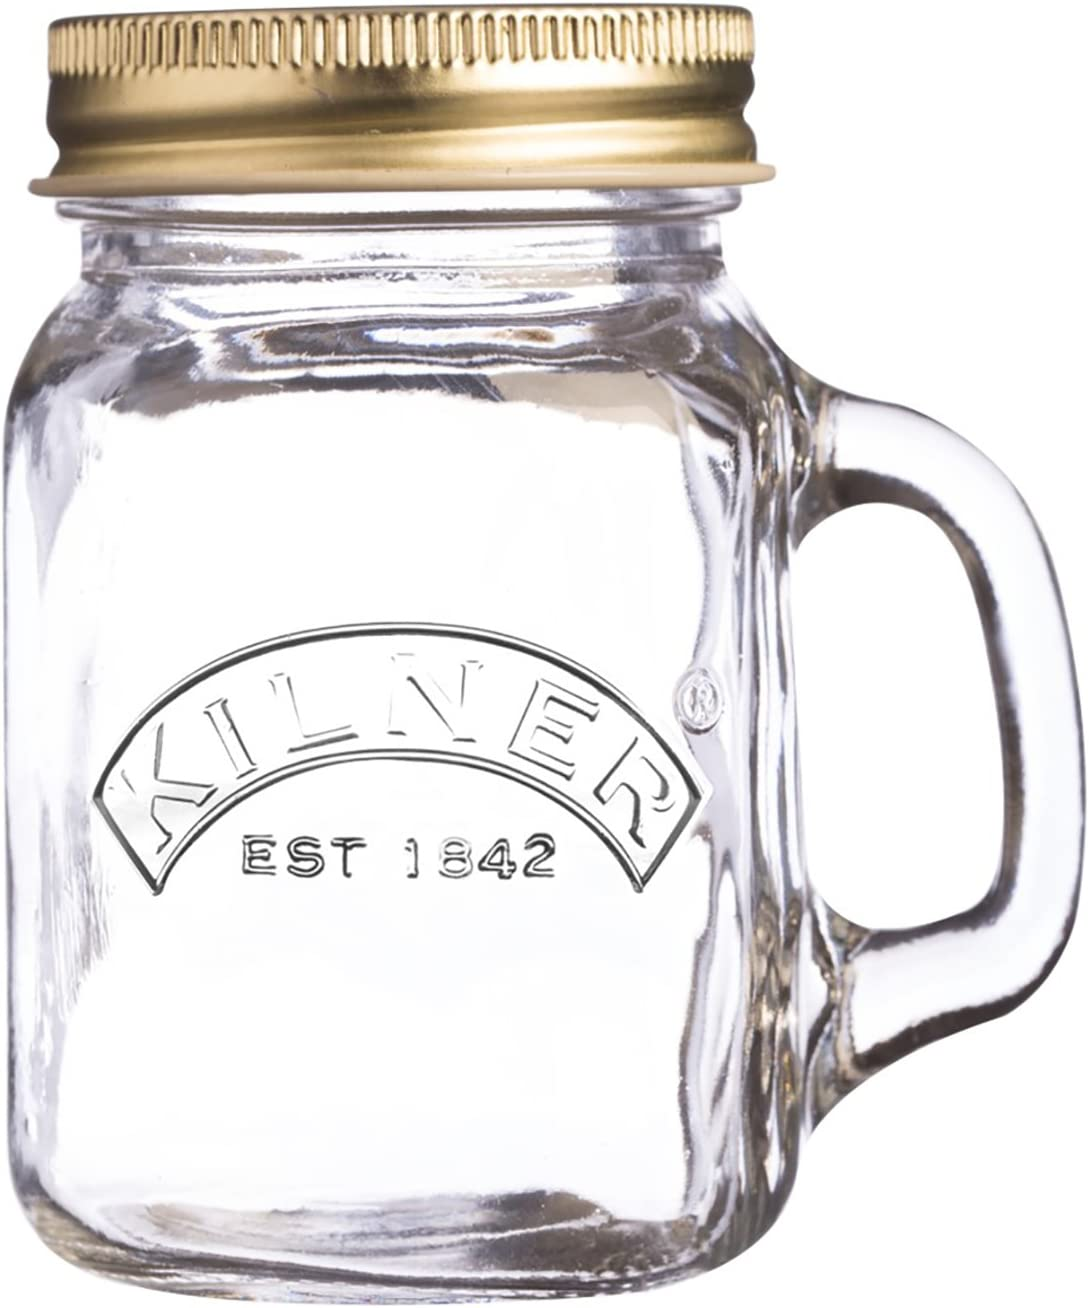 Kilner Glassware Mini Handled Drinking Jar with Screw-top Lid, Small Container Perfect for Bridal Shower Favors, Gifting Homemade Jams and More, 4-3/4-Fluid Ounces